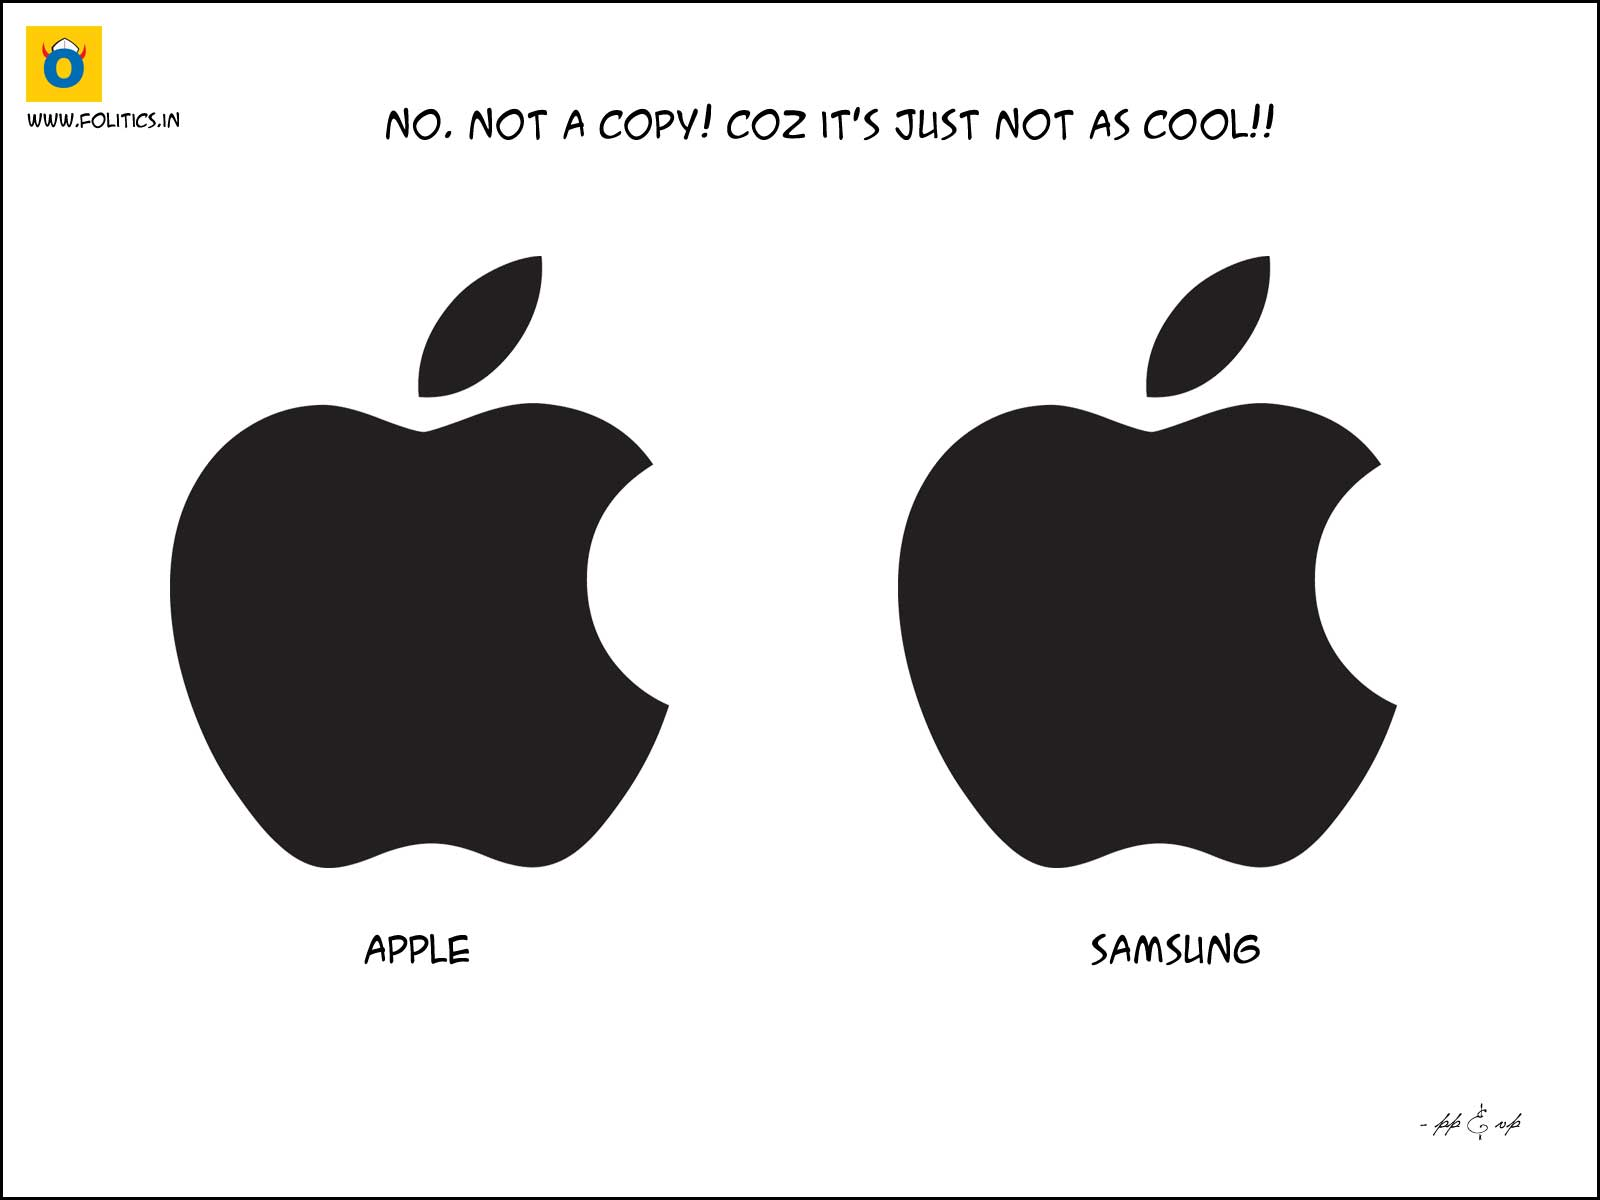 Apple Forced by UK to Print Public Apologies to Samsung for Design Theft Accusations